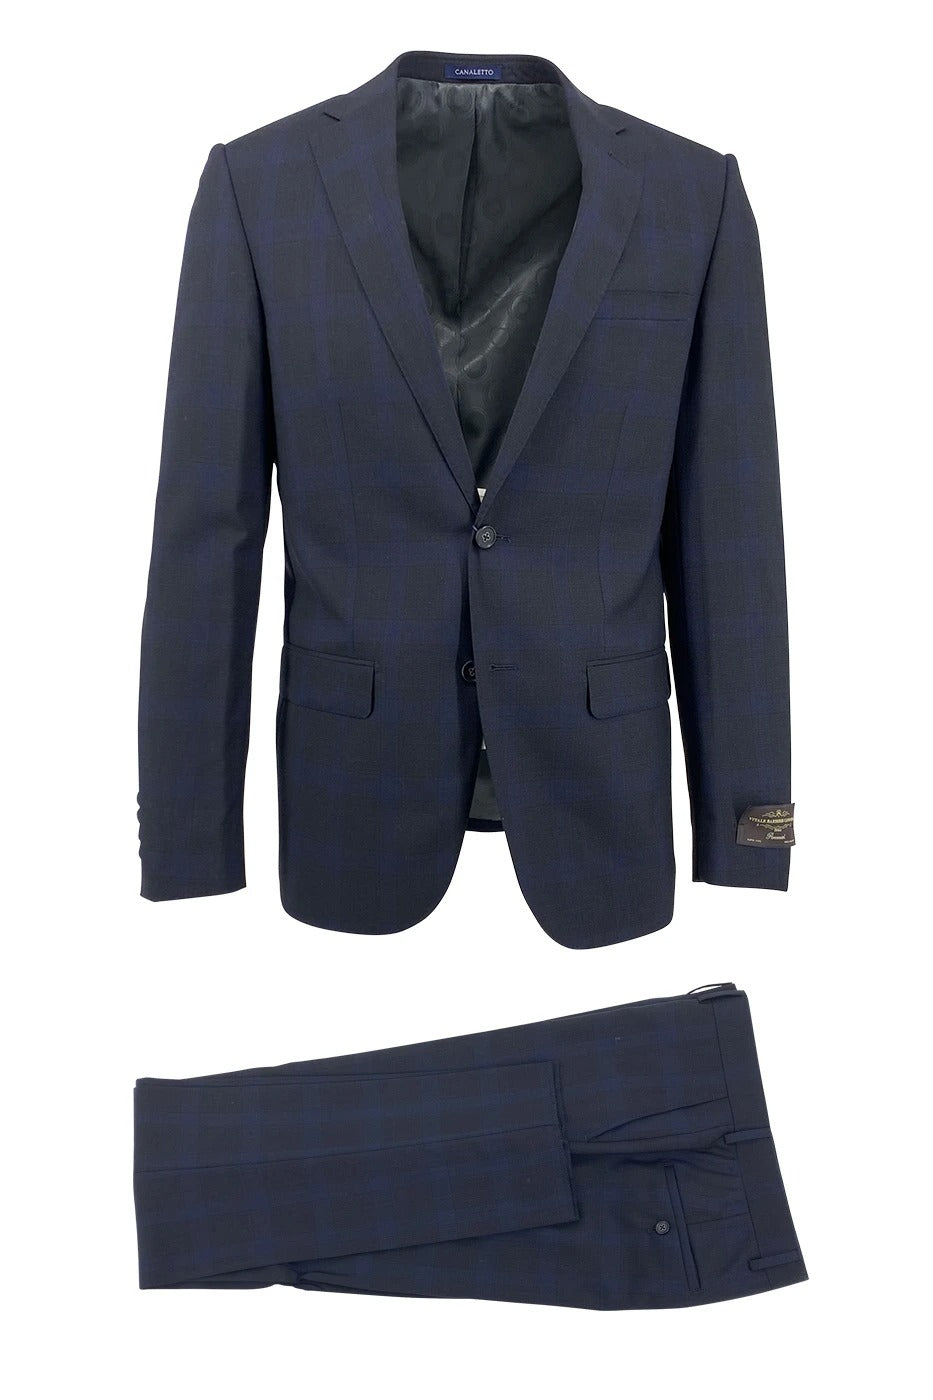 Canaletto Midnight Blue with Navy Windowpane Vitale Barberis Canonico Cloth Slim Fit Superfine Wool, Porto Suit CV2402362